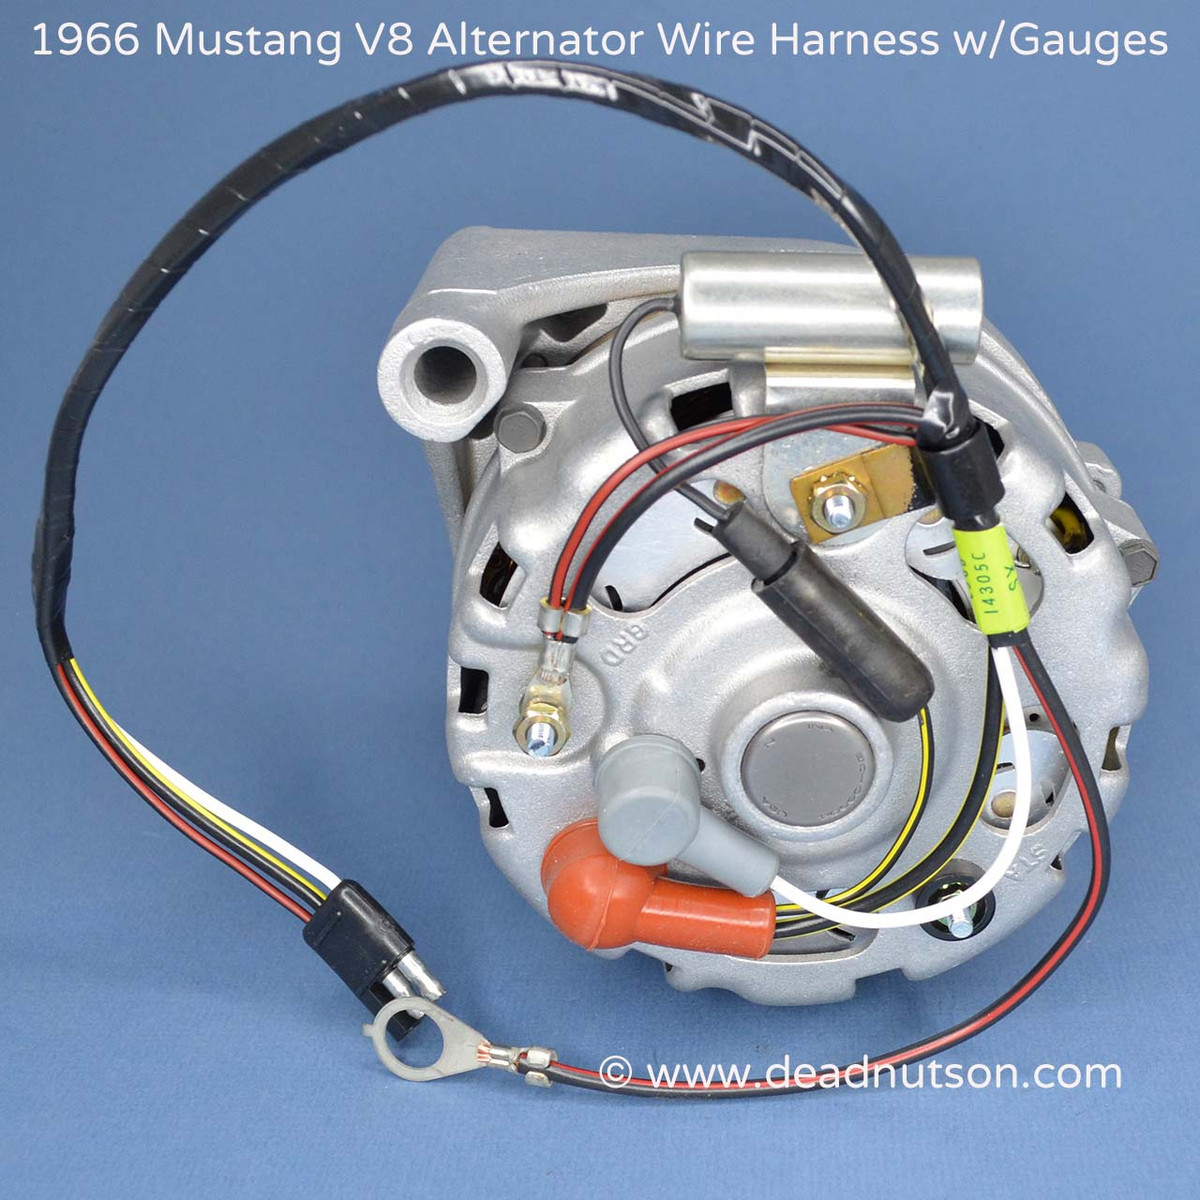 medium resolution of 1964 1965 mustang alternator wire harness tag 289 w instrument gauges